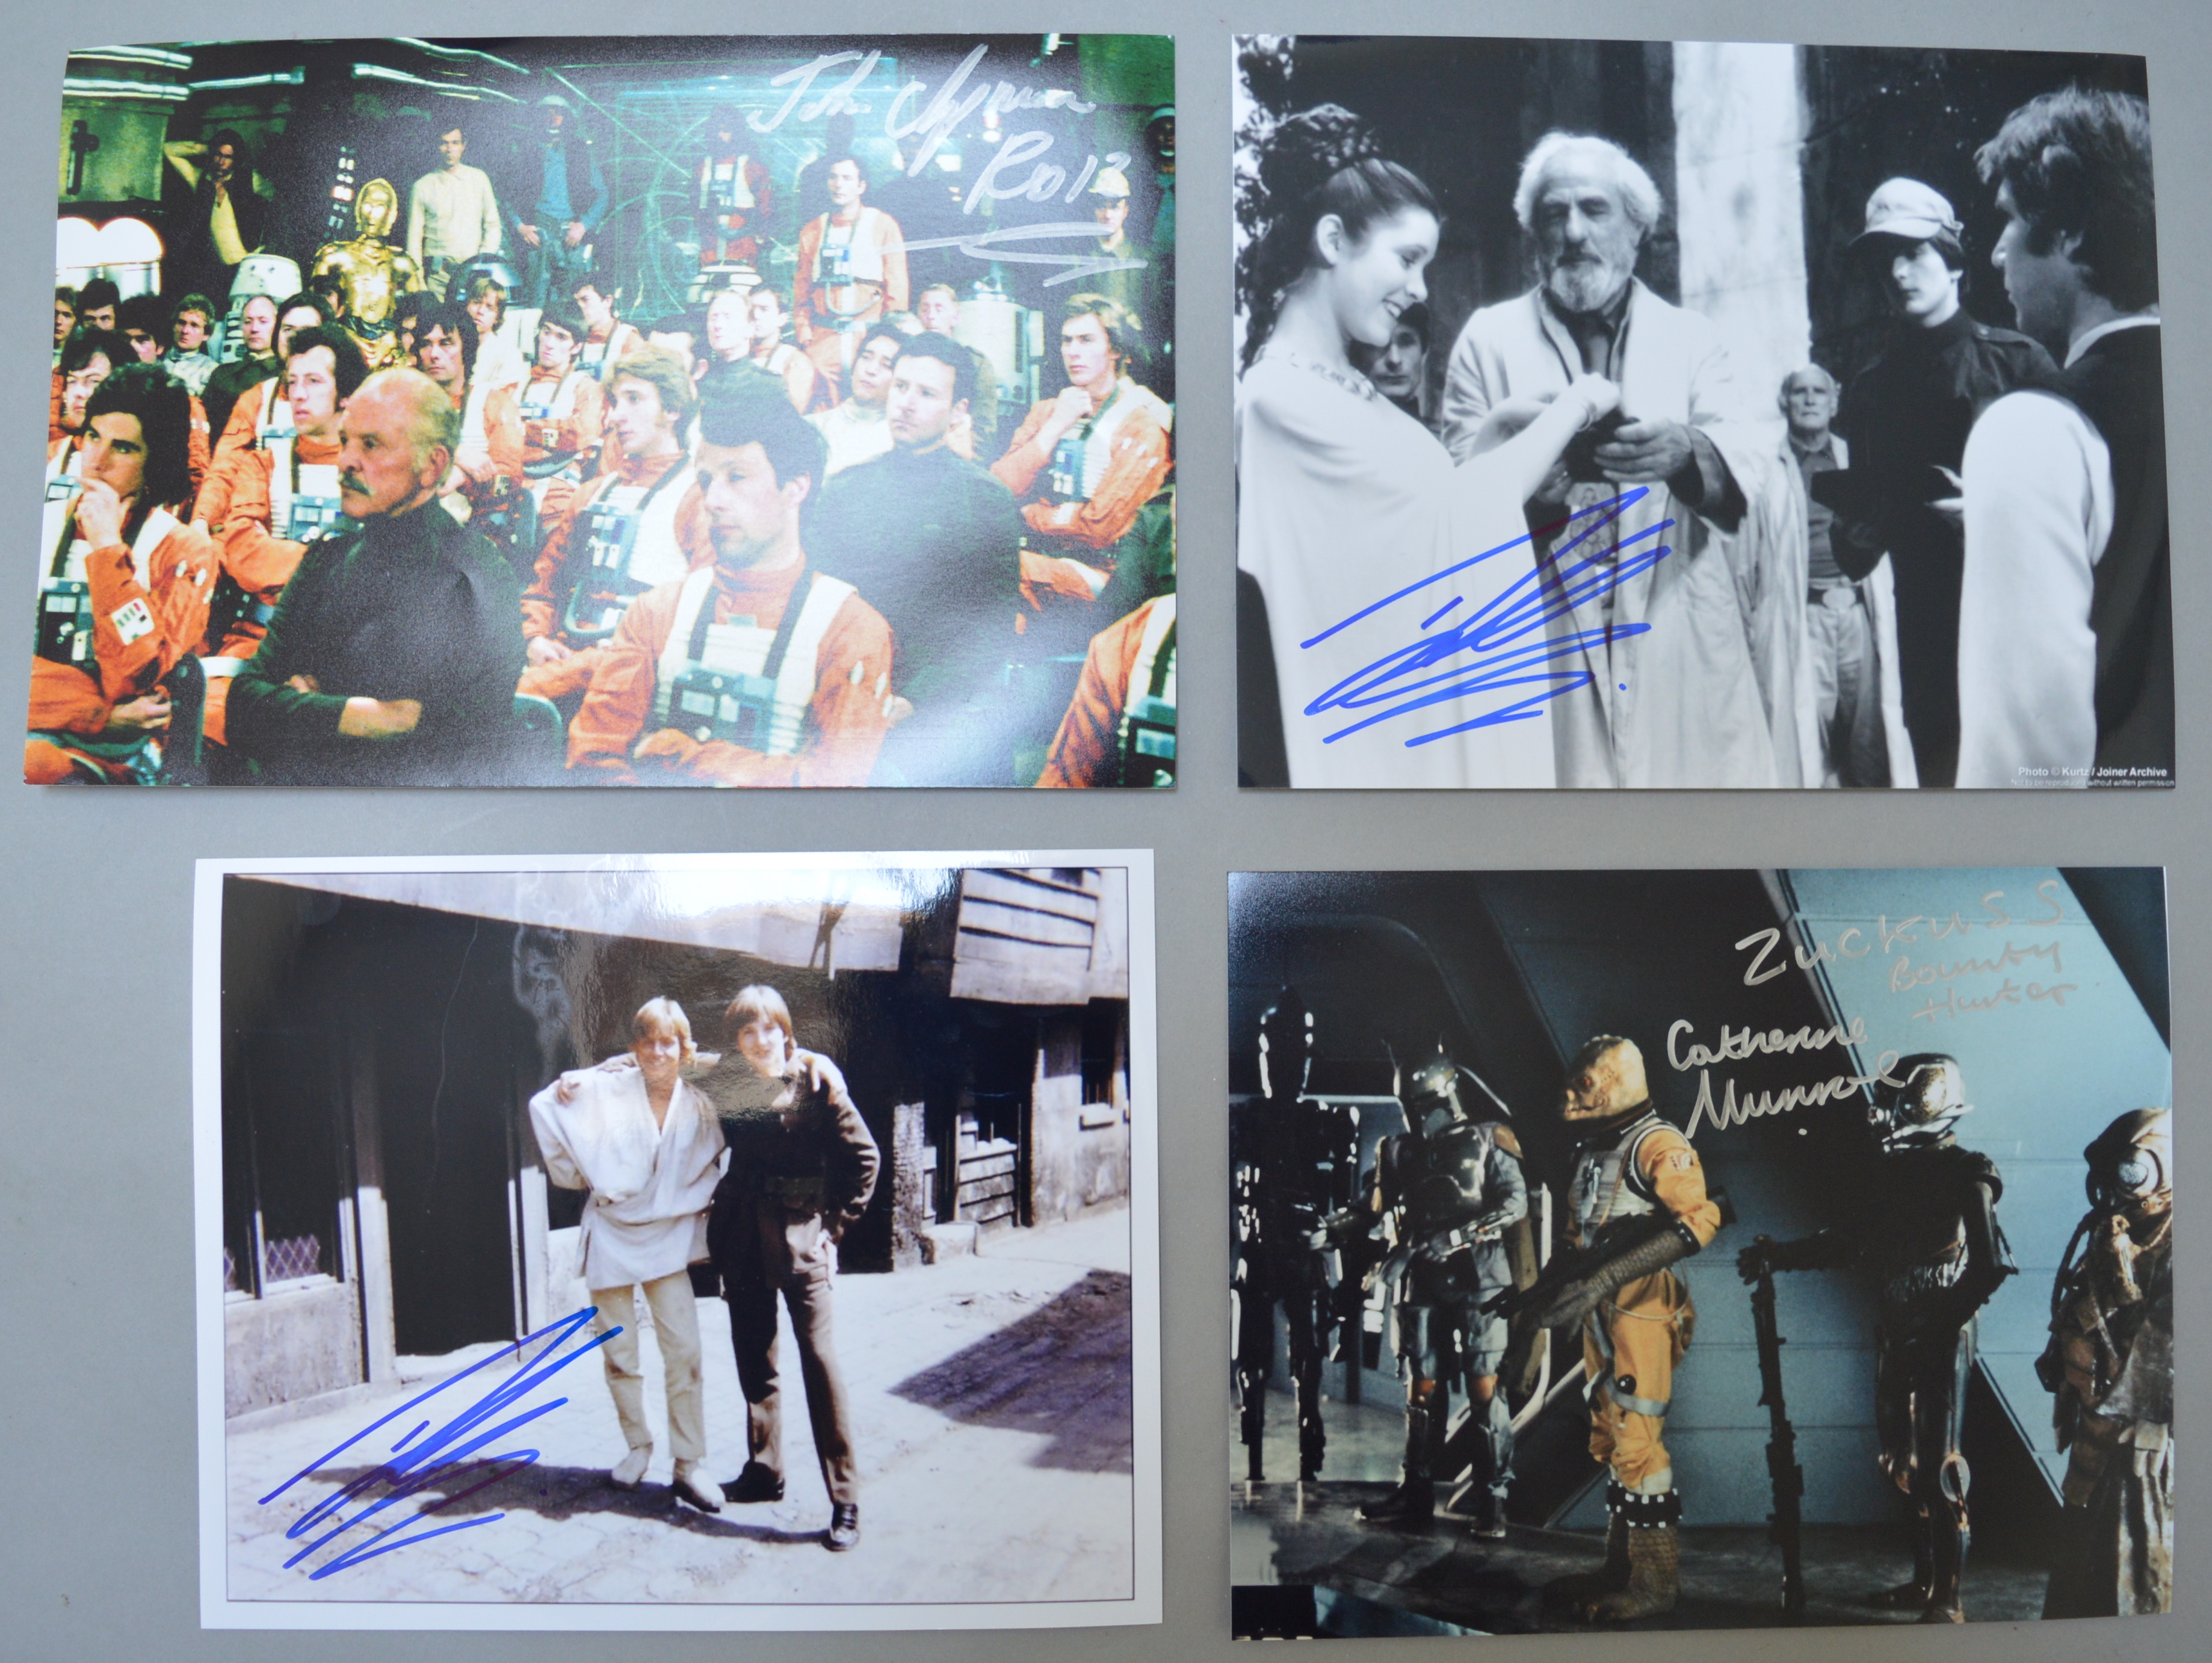 Lot 2 - Four signed Star Wars photos including John Chapman and Catherine Munroe - Zuckuss the Bounty